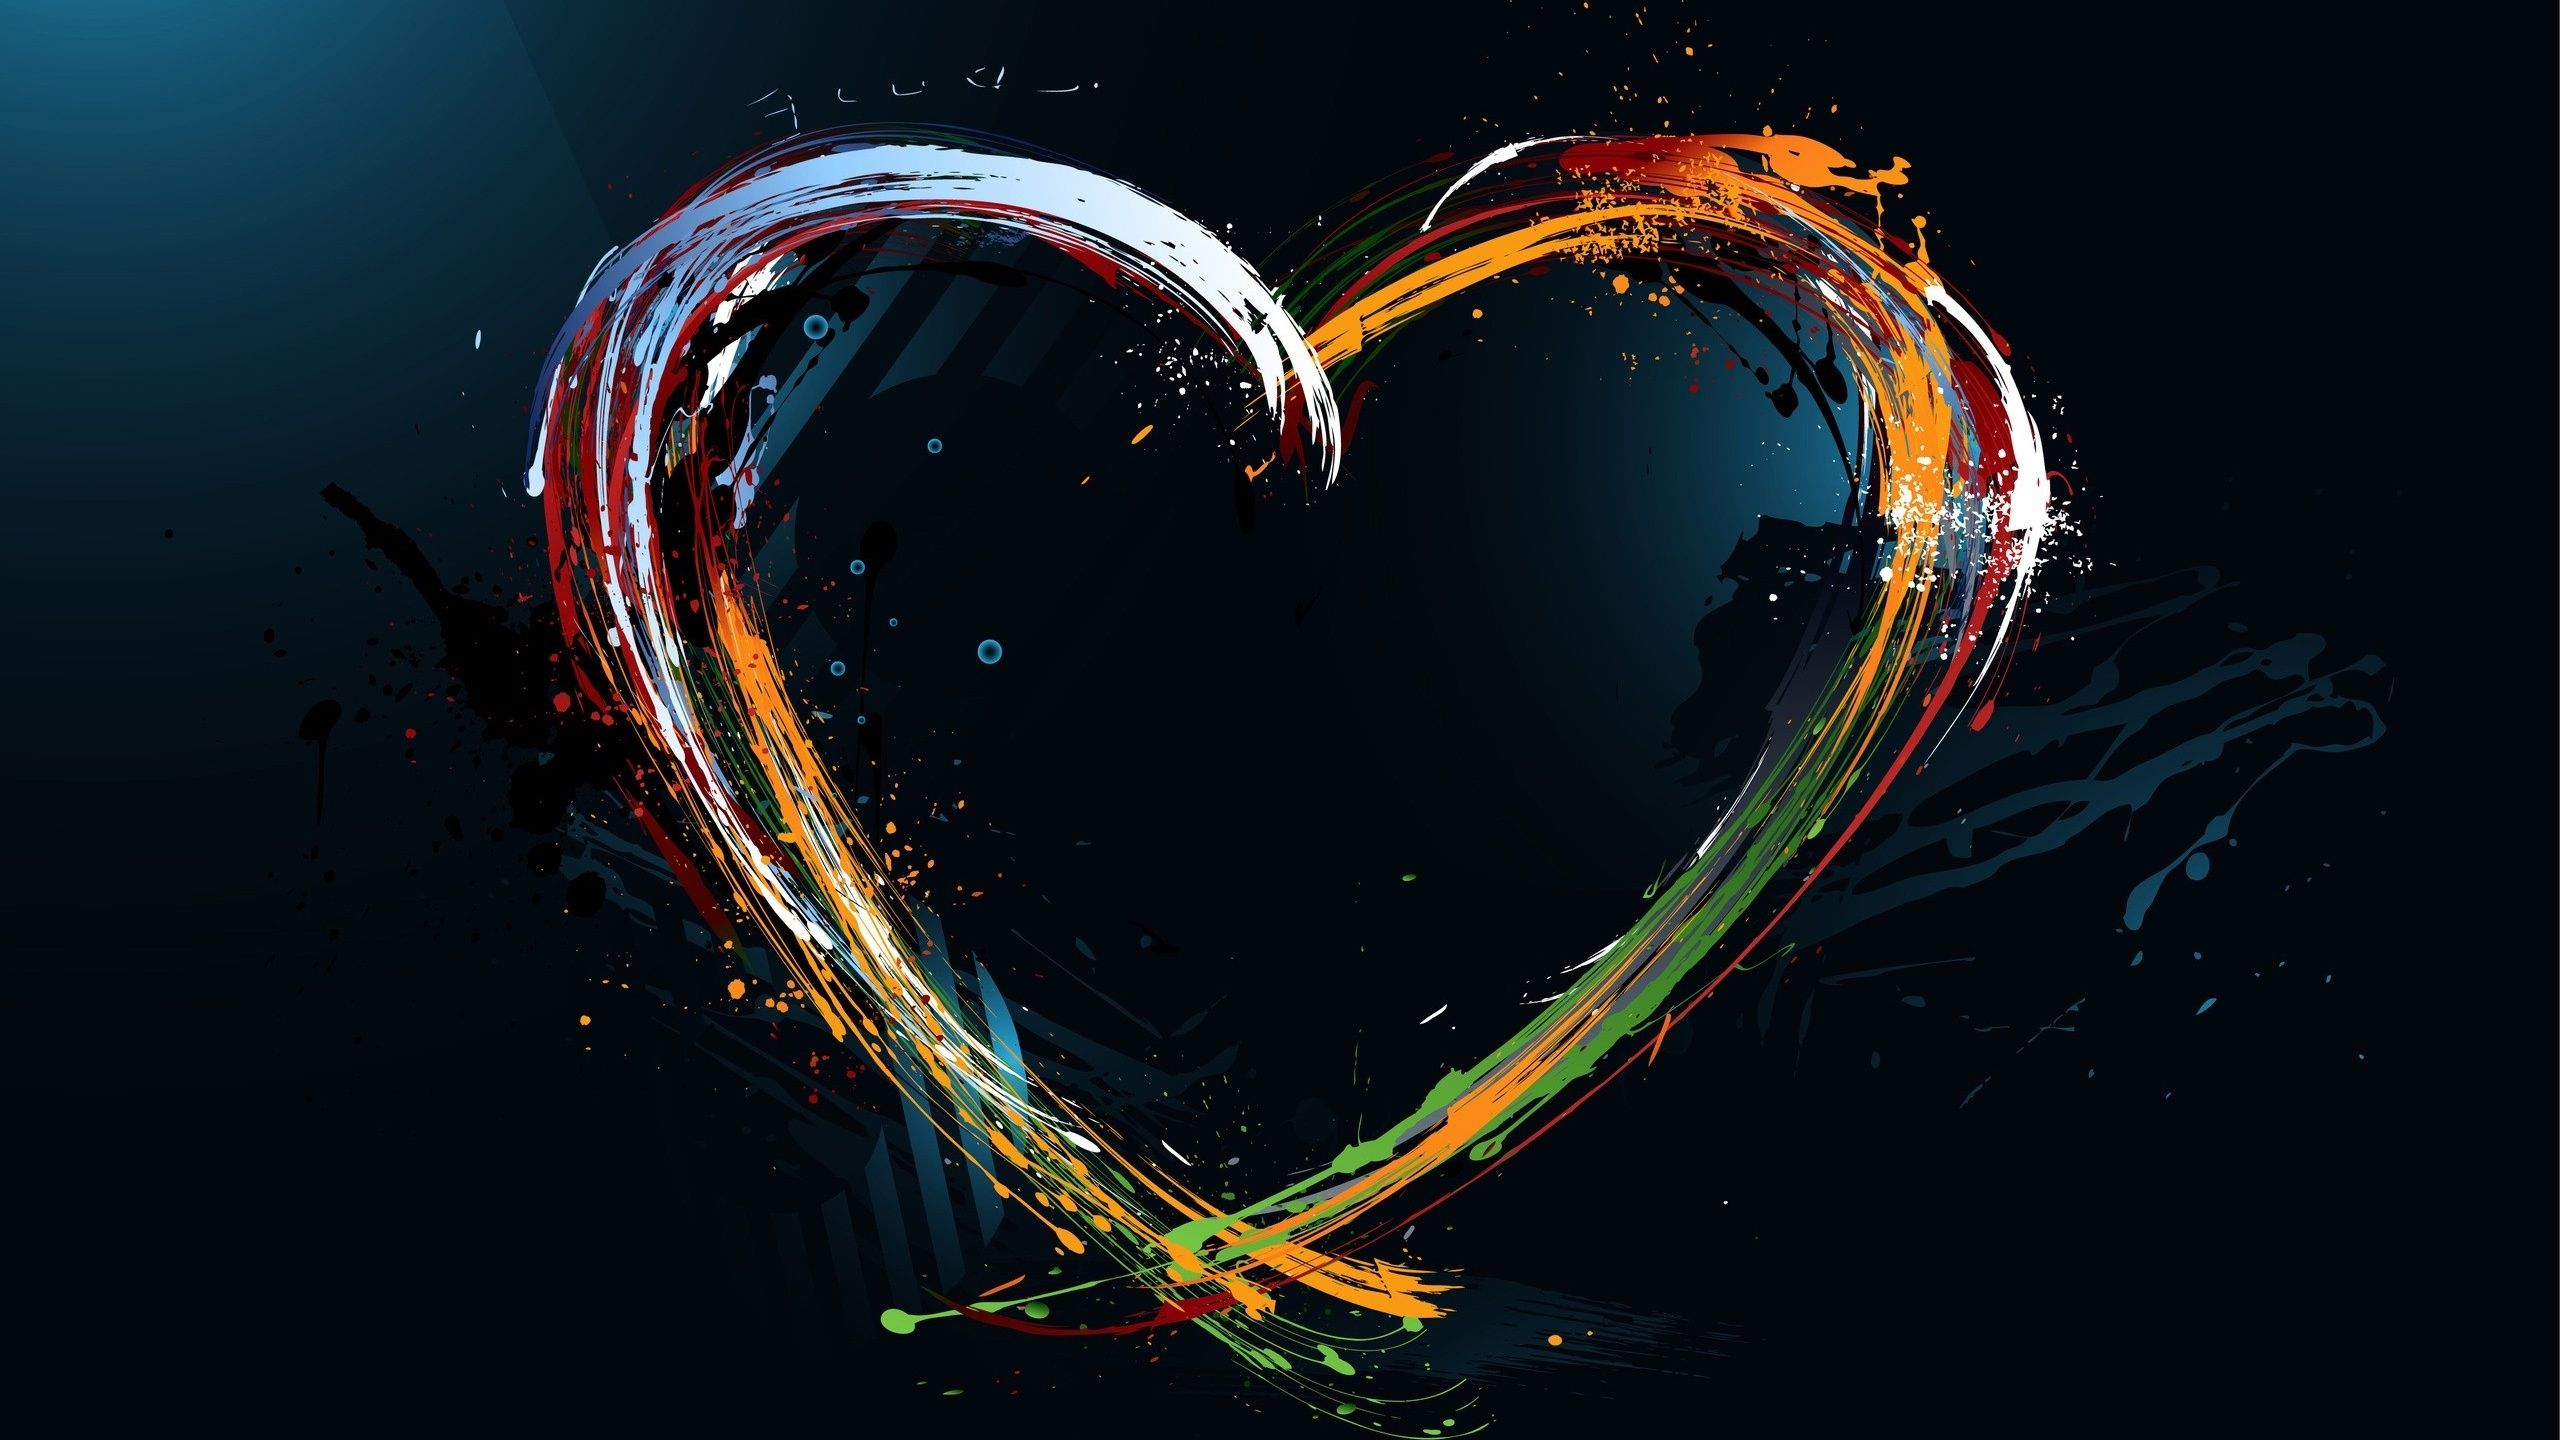 abstract love heart HD Images Free Download